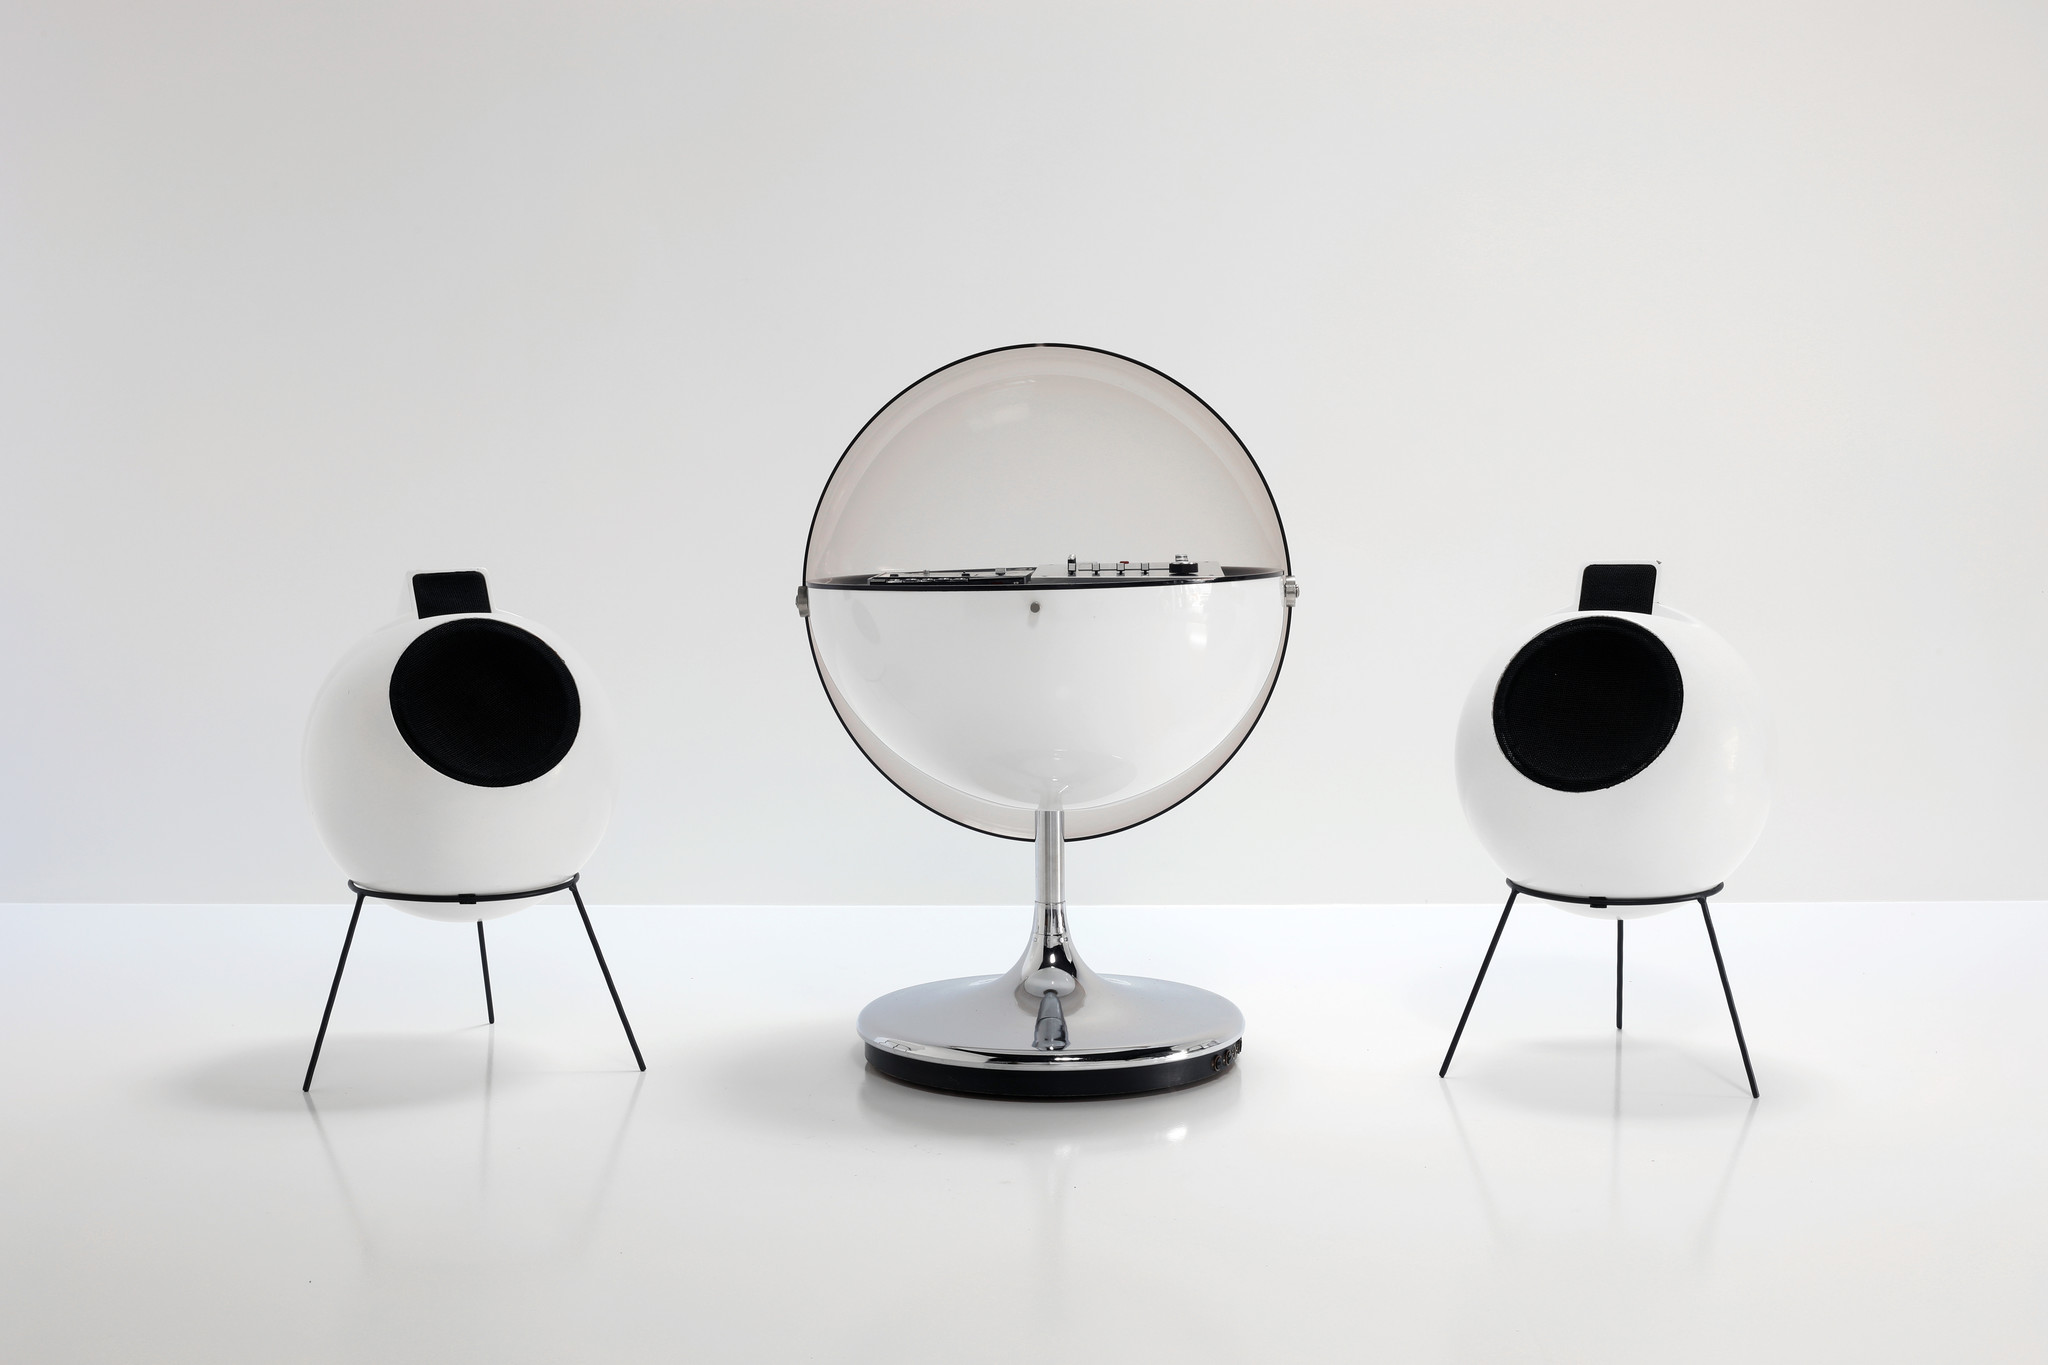 ICONIC PHILIPS VISION 2000 'ROSITA' STEREO SYSTEM BY THILO OERKE, 1970'S